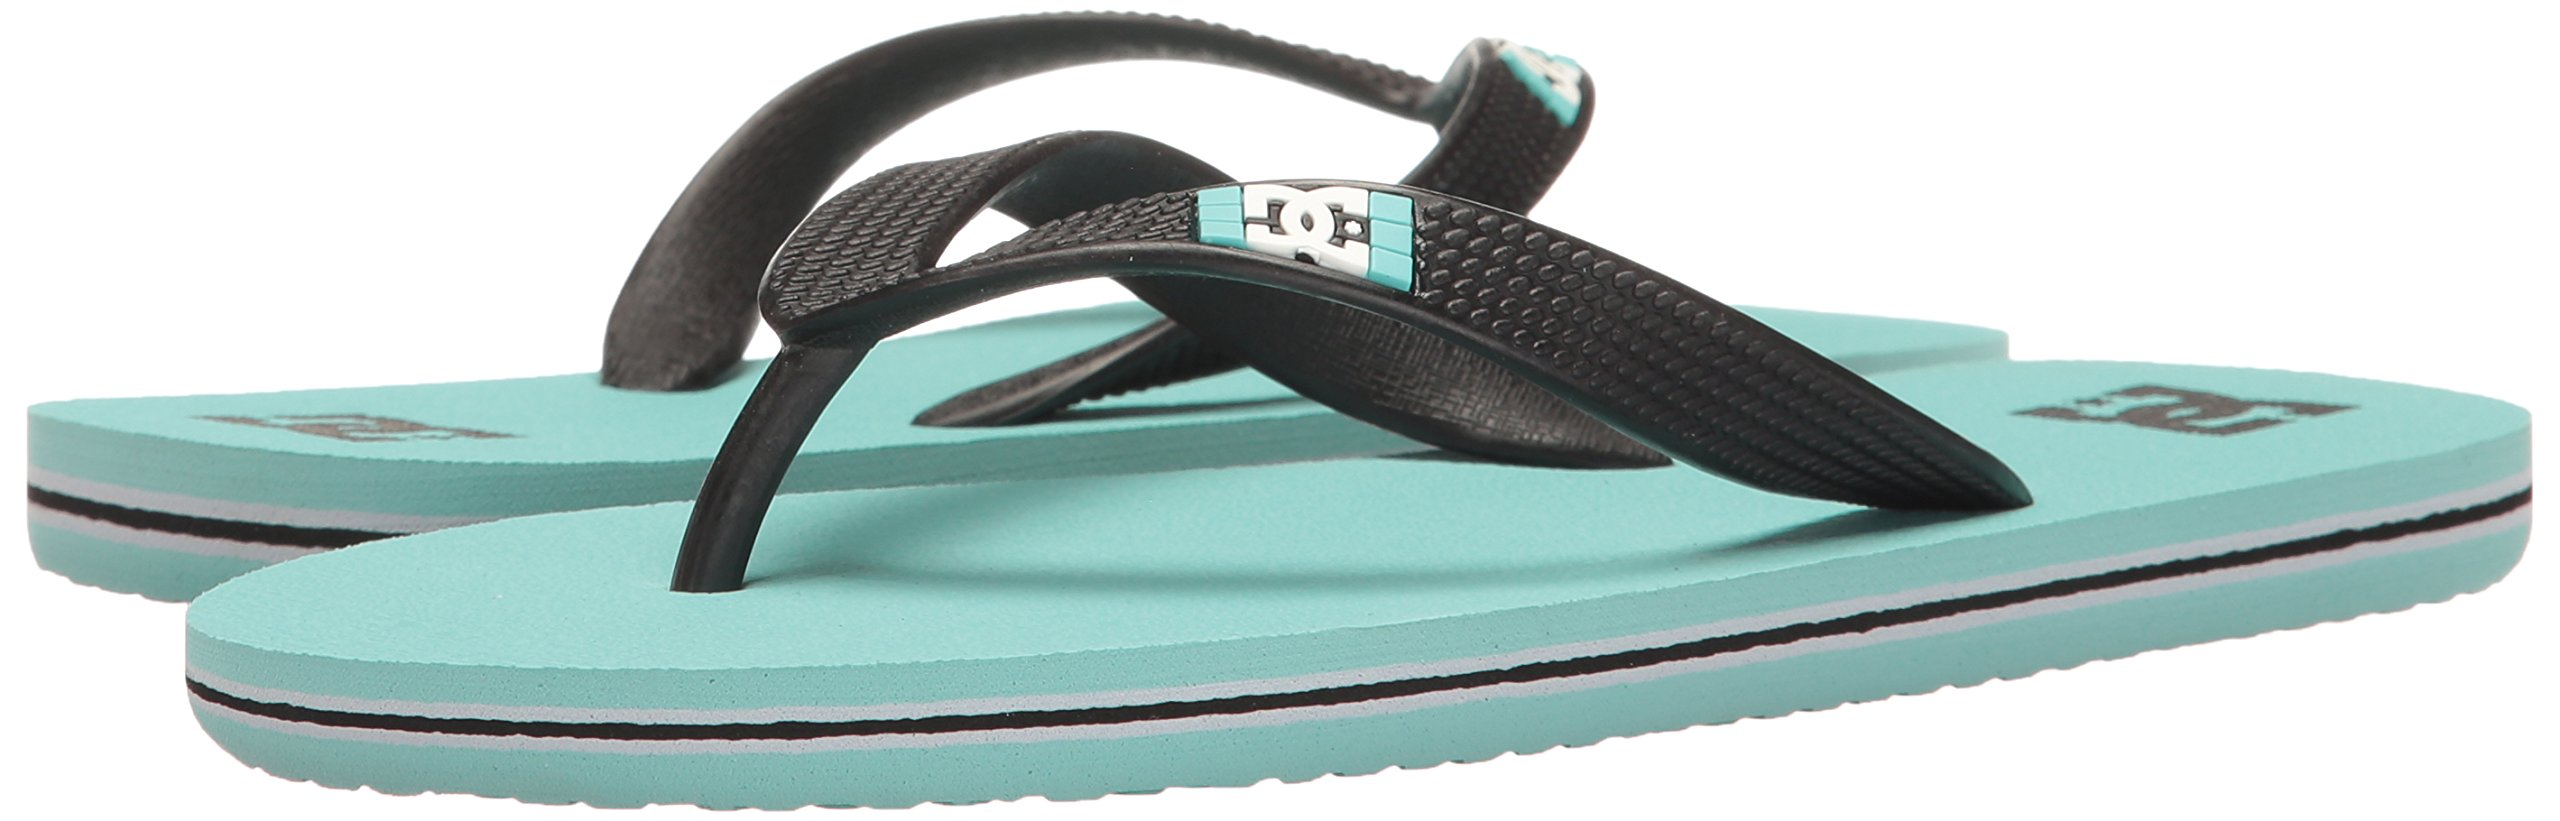 DC Girls' Spray Flip Flop, Turquoise, 6 M US Little Kid by DC (Image #6)